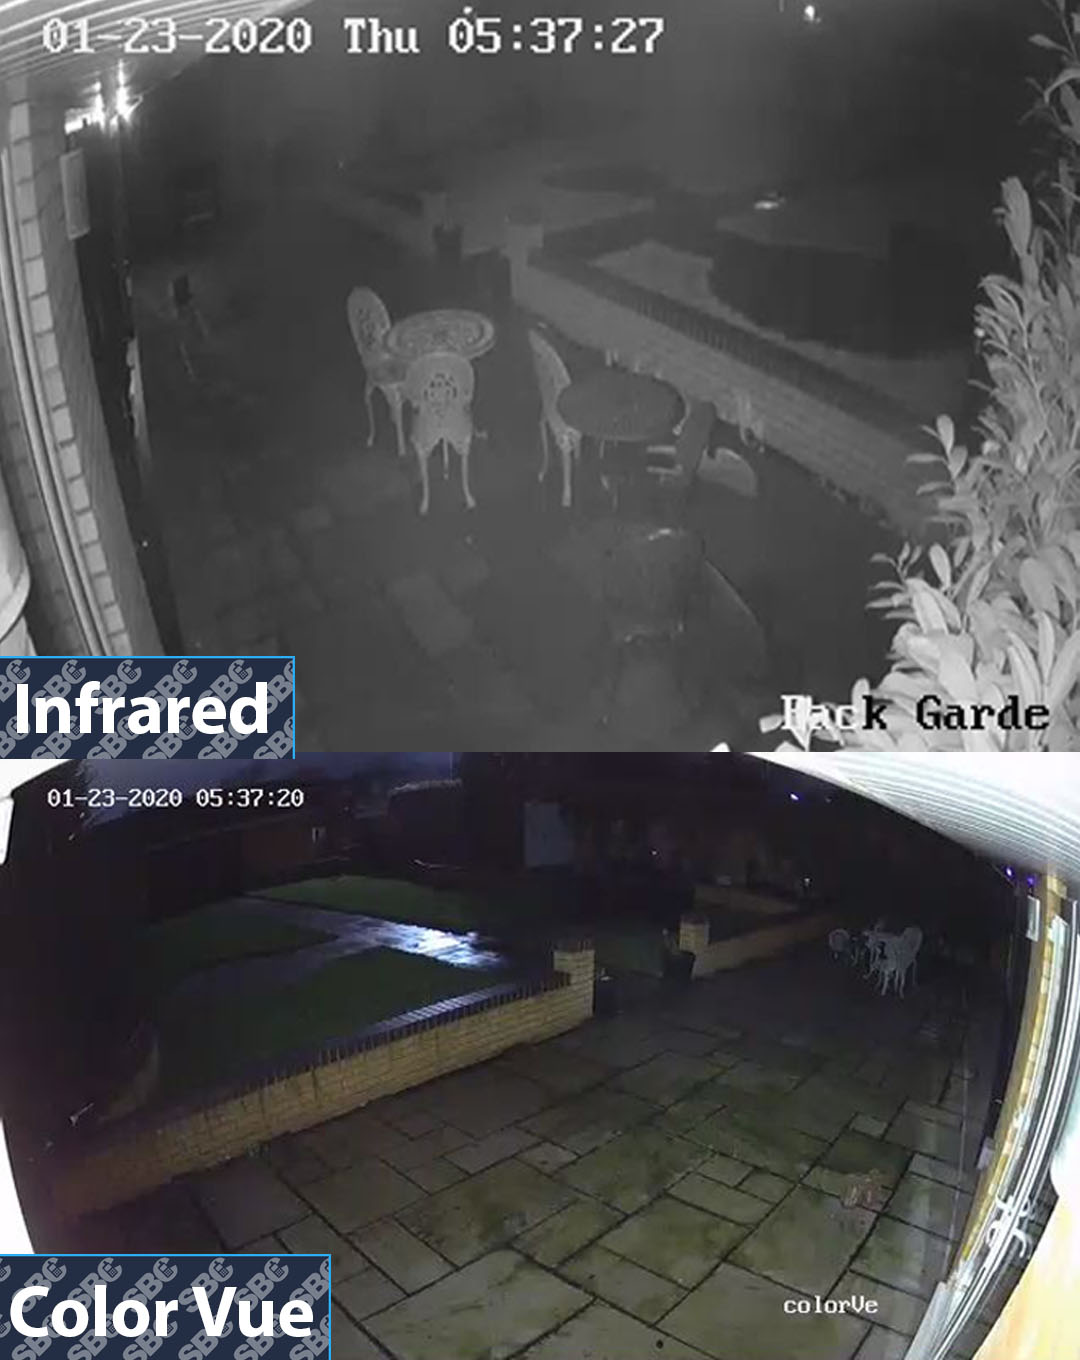 Superior Hikvision colorvu turret camera compared against impractical infrared technology at night.